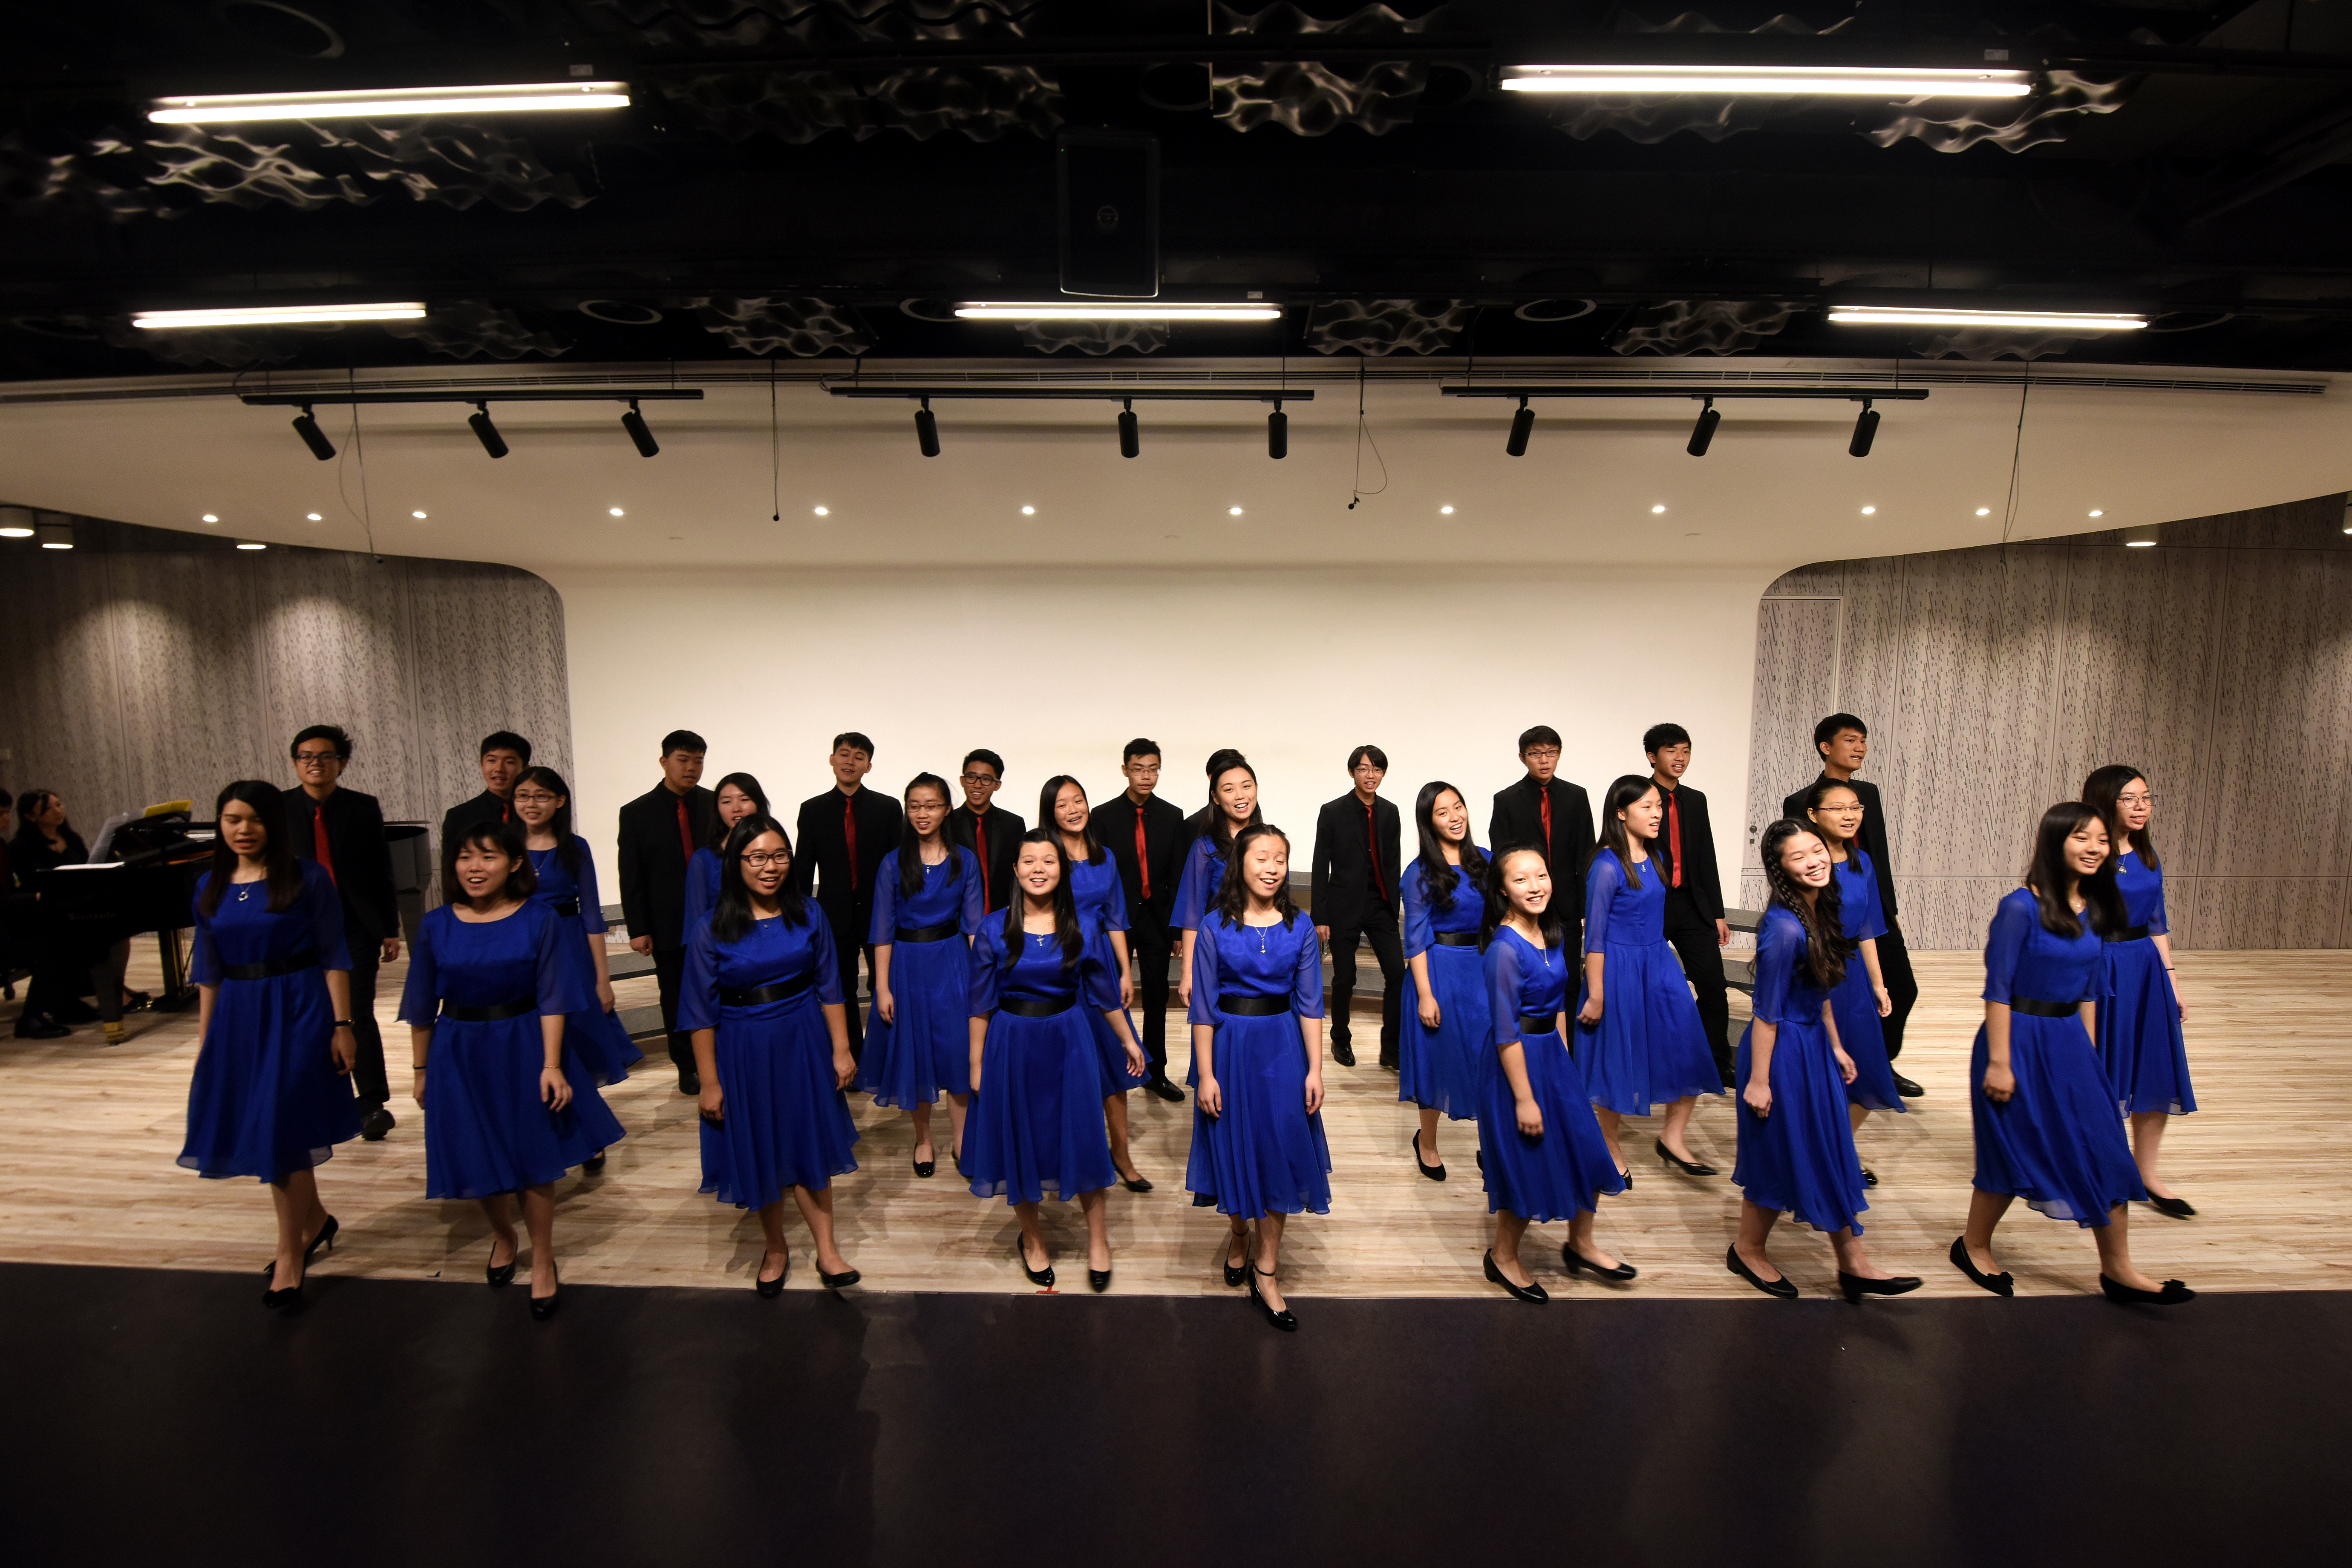 https://hkcchoir.org.hk/sites/default/files/chamber_youth_2017_youth_mini.jpg